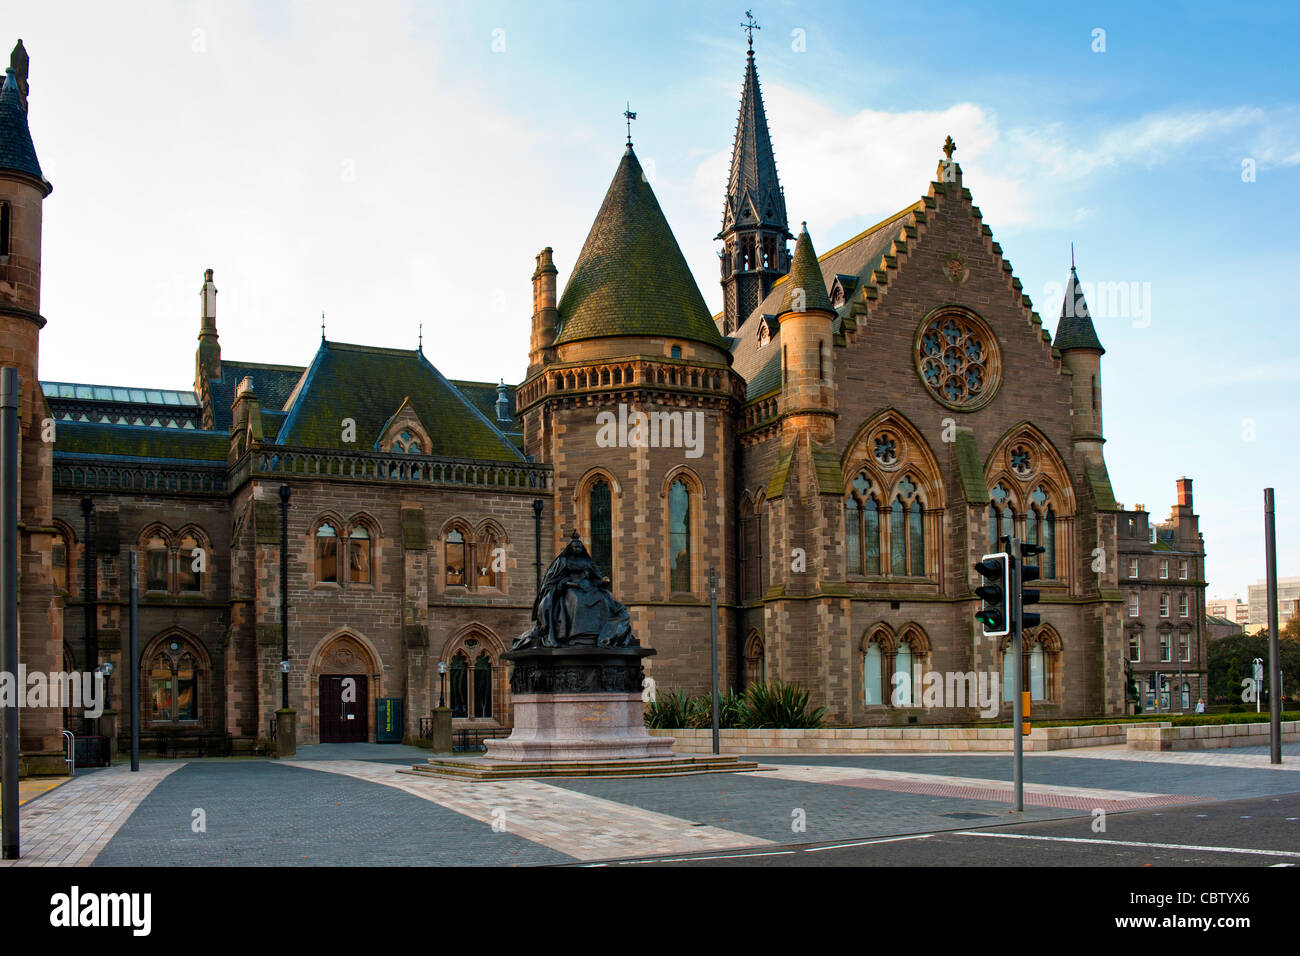 McManus Art Gallery in Dundee Scotland - Stock Image